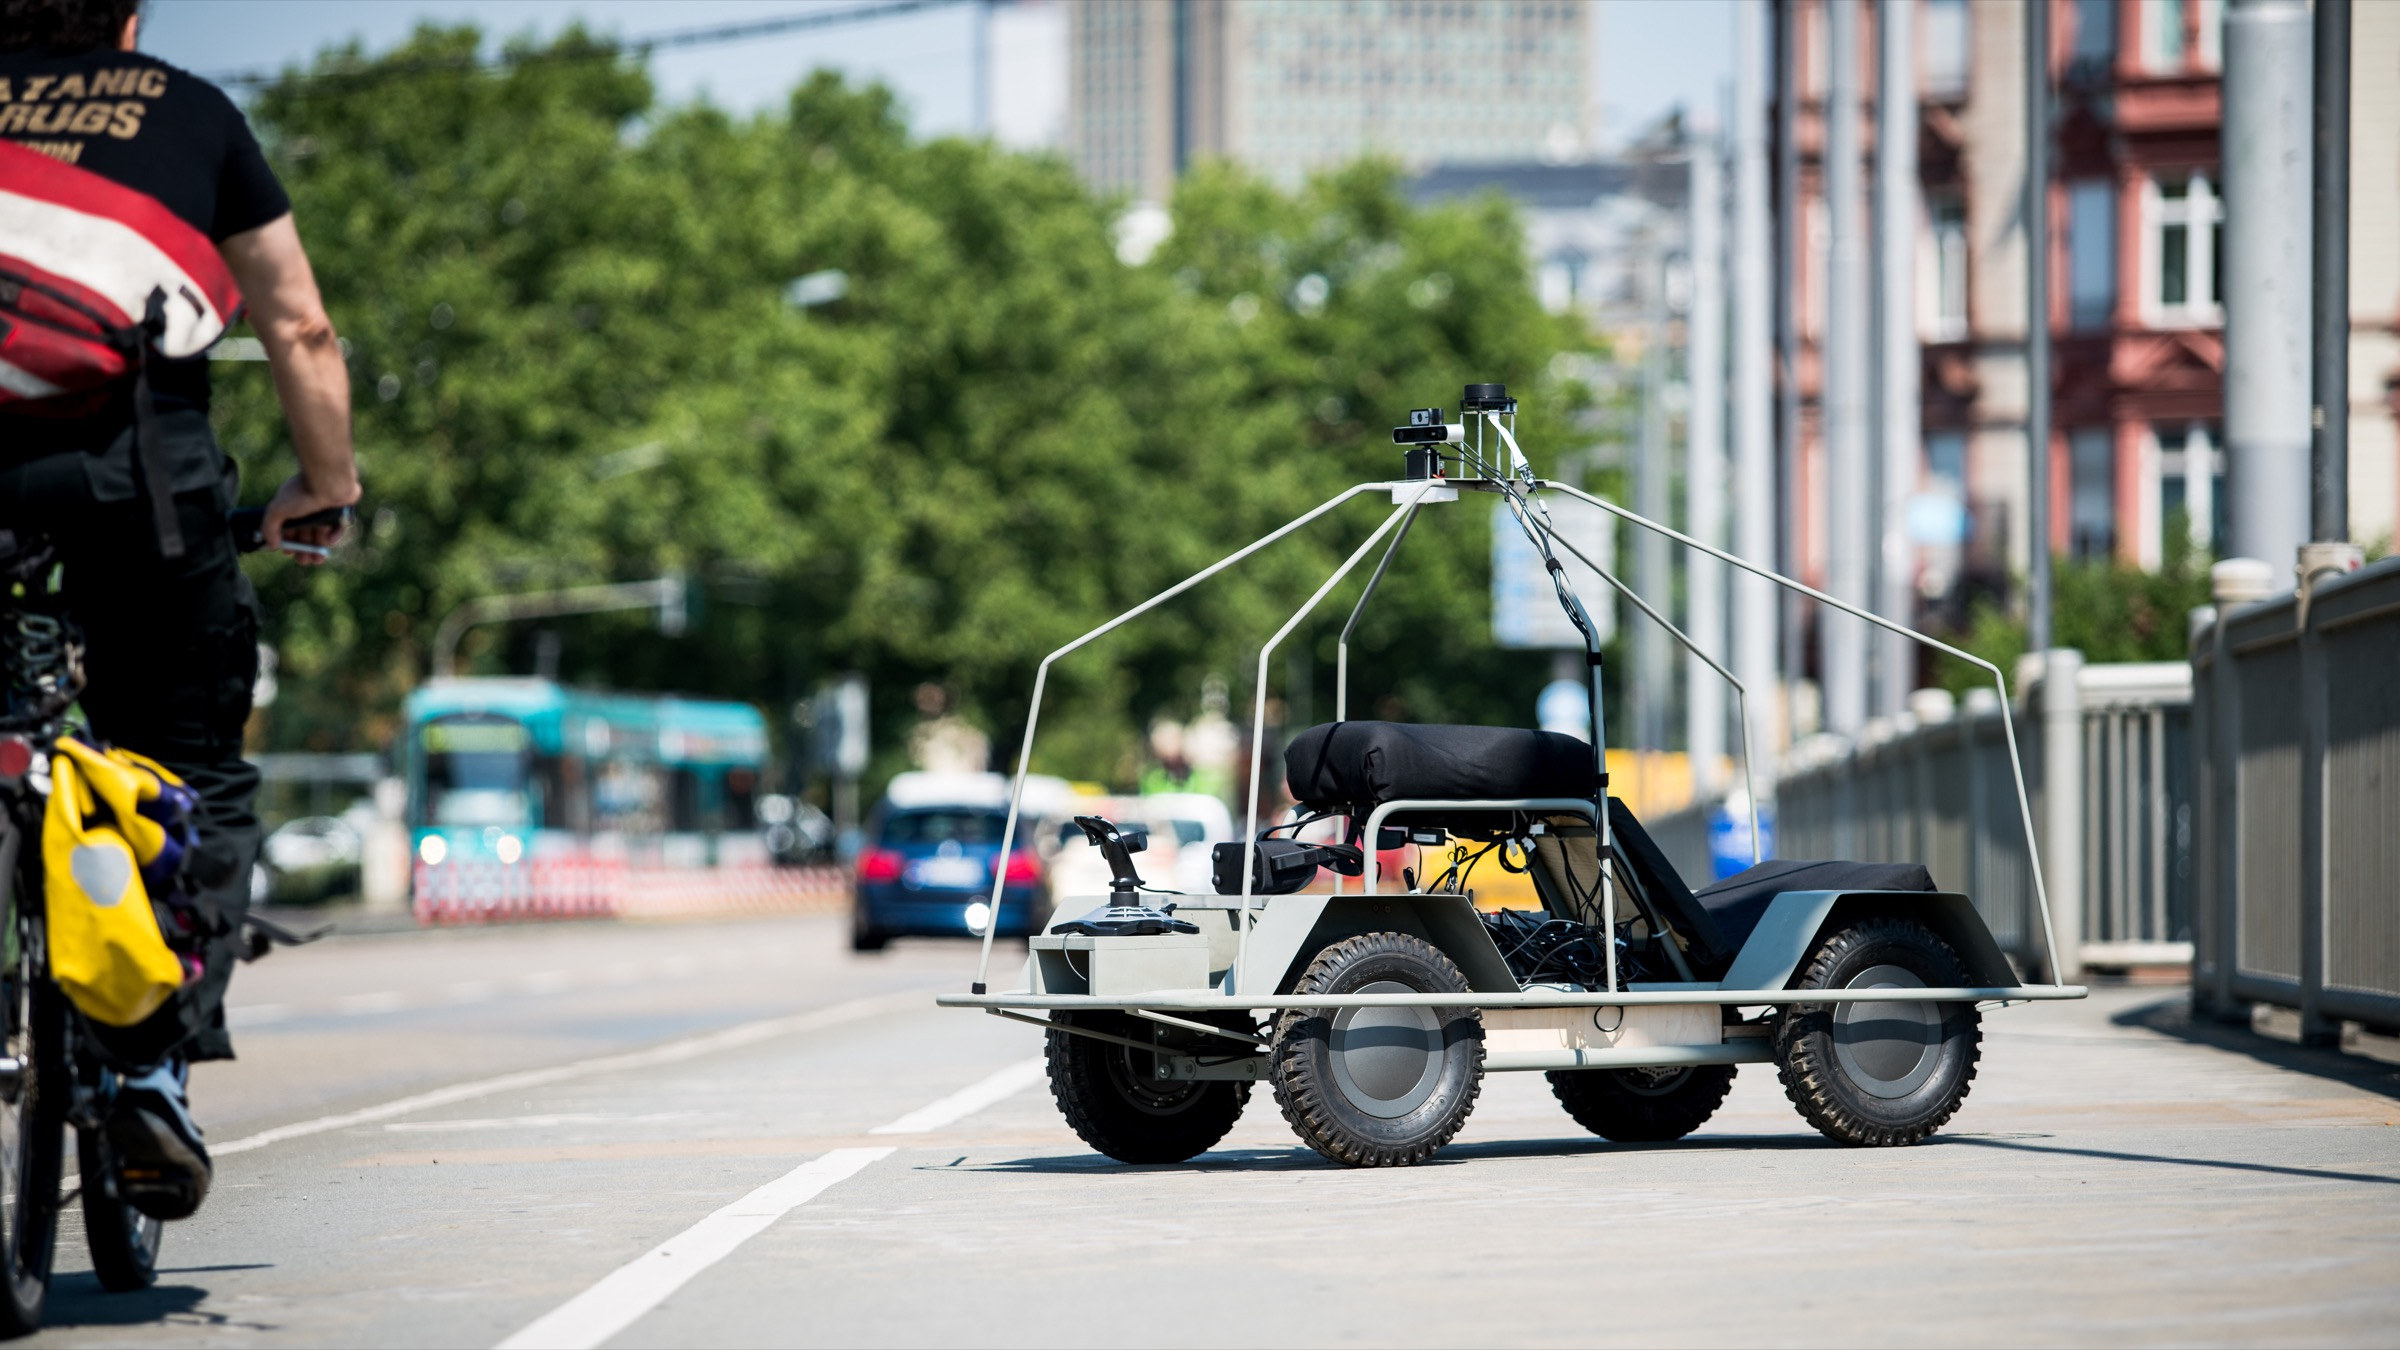 Who Wants to be a Self-Driving Car? – Empathising with self